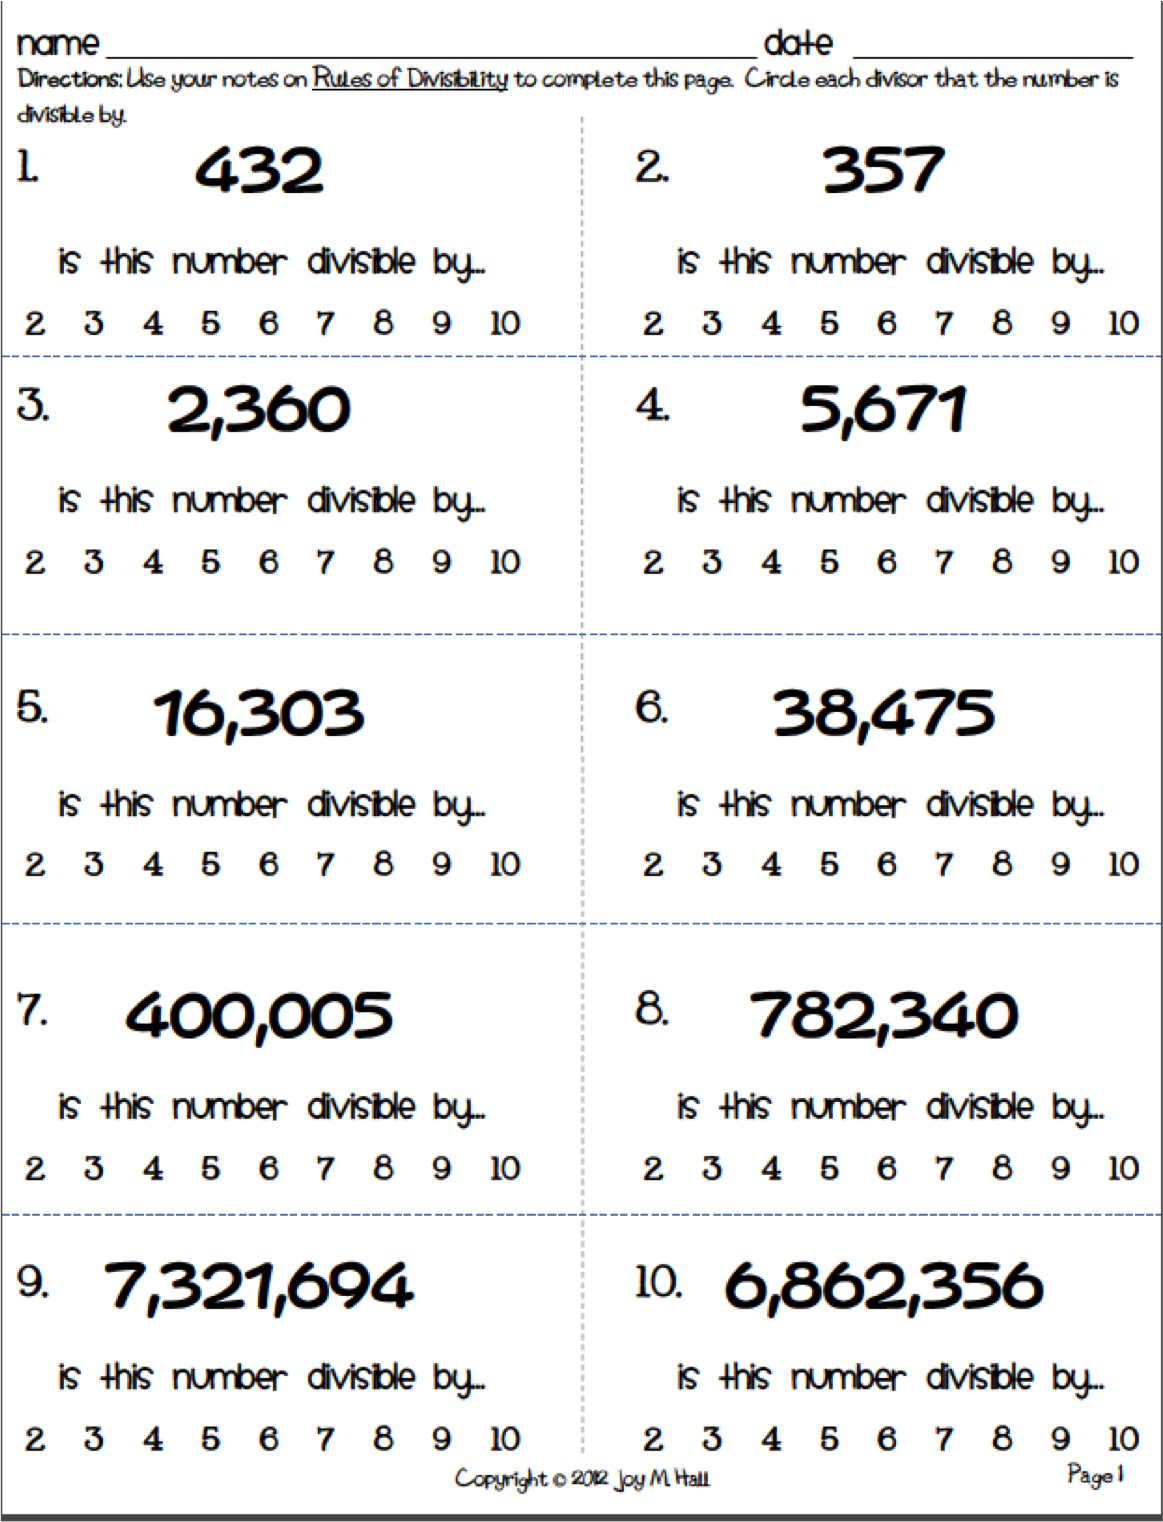 divisibility rules worksheets Termolak – Divisibility Worksheets